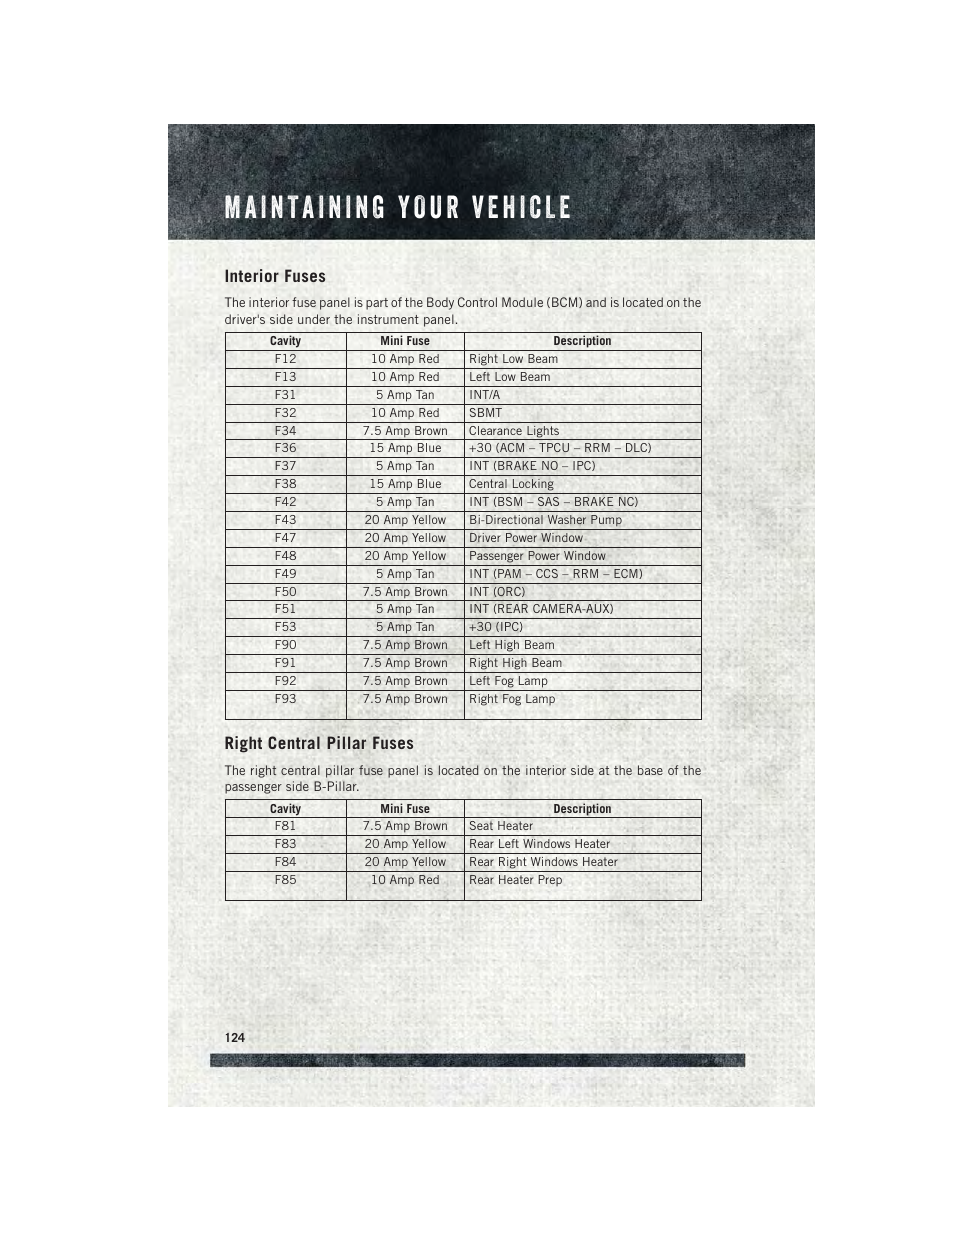 Interior Fuses Right Central Pillar Ram Trucks 2015 F32 Fuse Box Promaster User Guide Manual Page 126 140